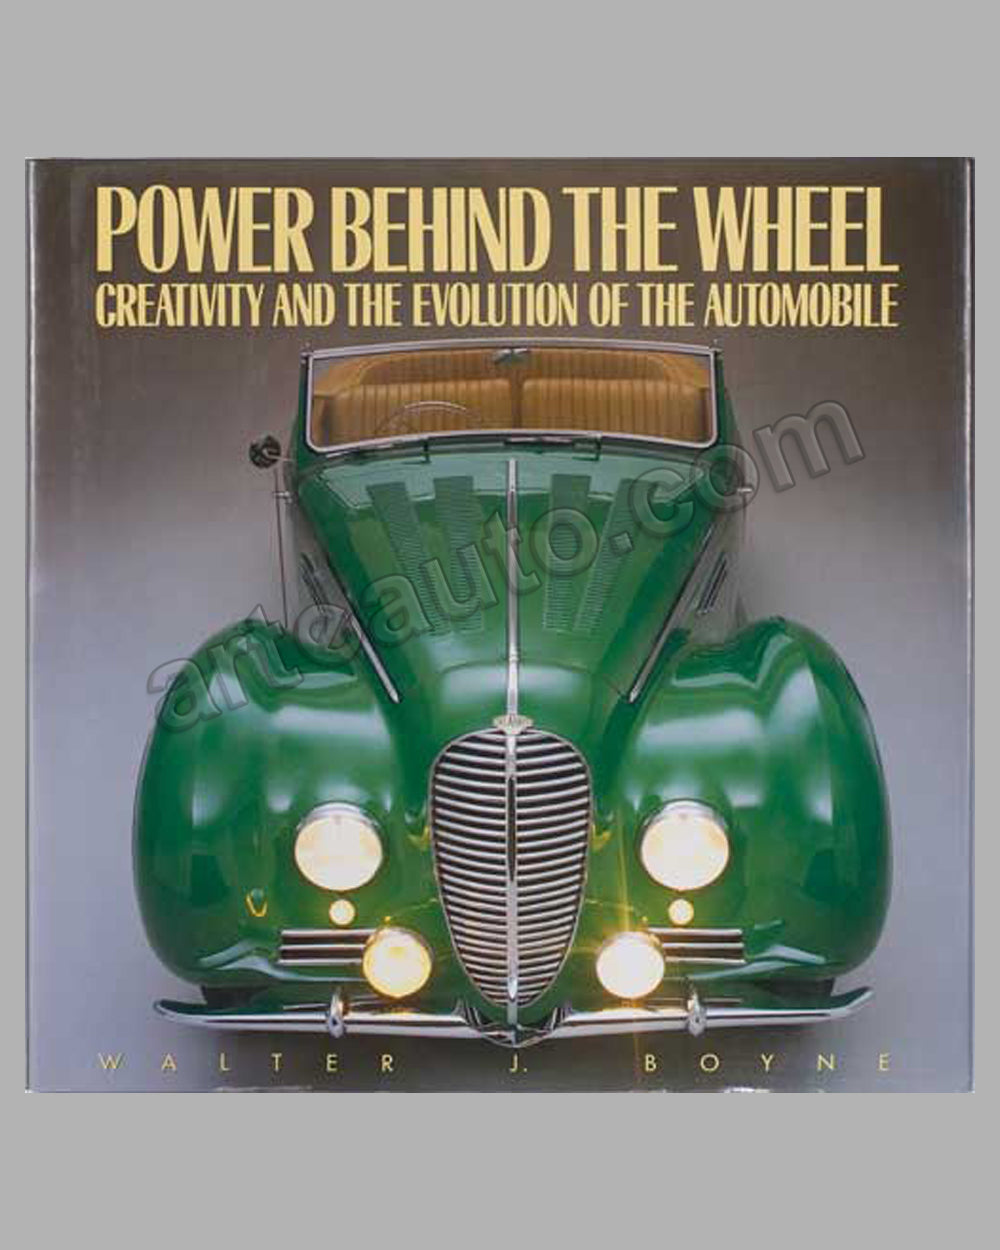 Power Behind the Wheel book by W. J. Boyne, 1991 ed.